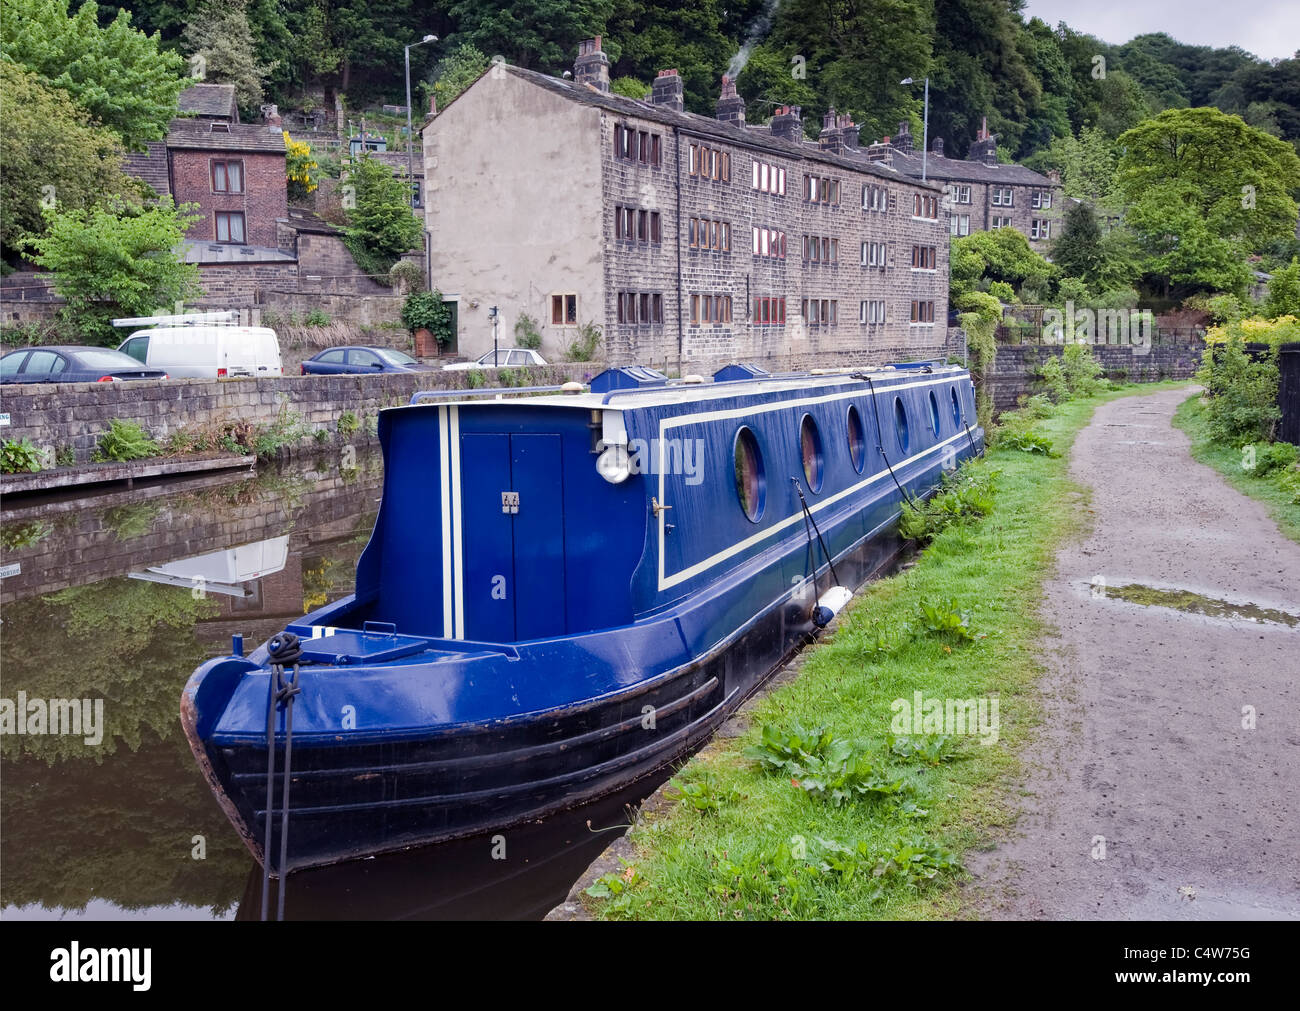 Blue narrowboat at moorings at the pennine town of Hebden bridge - Stock Image